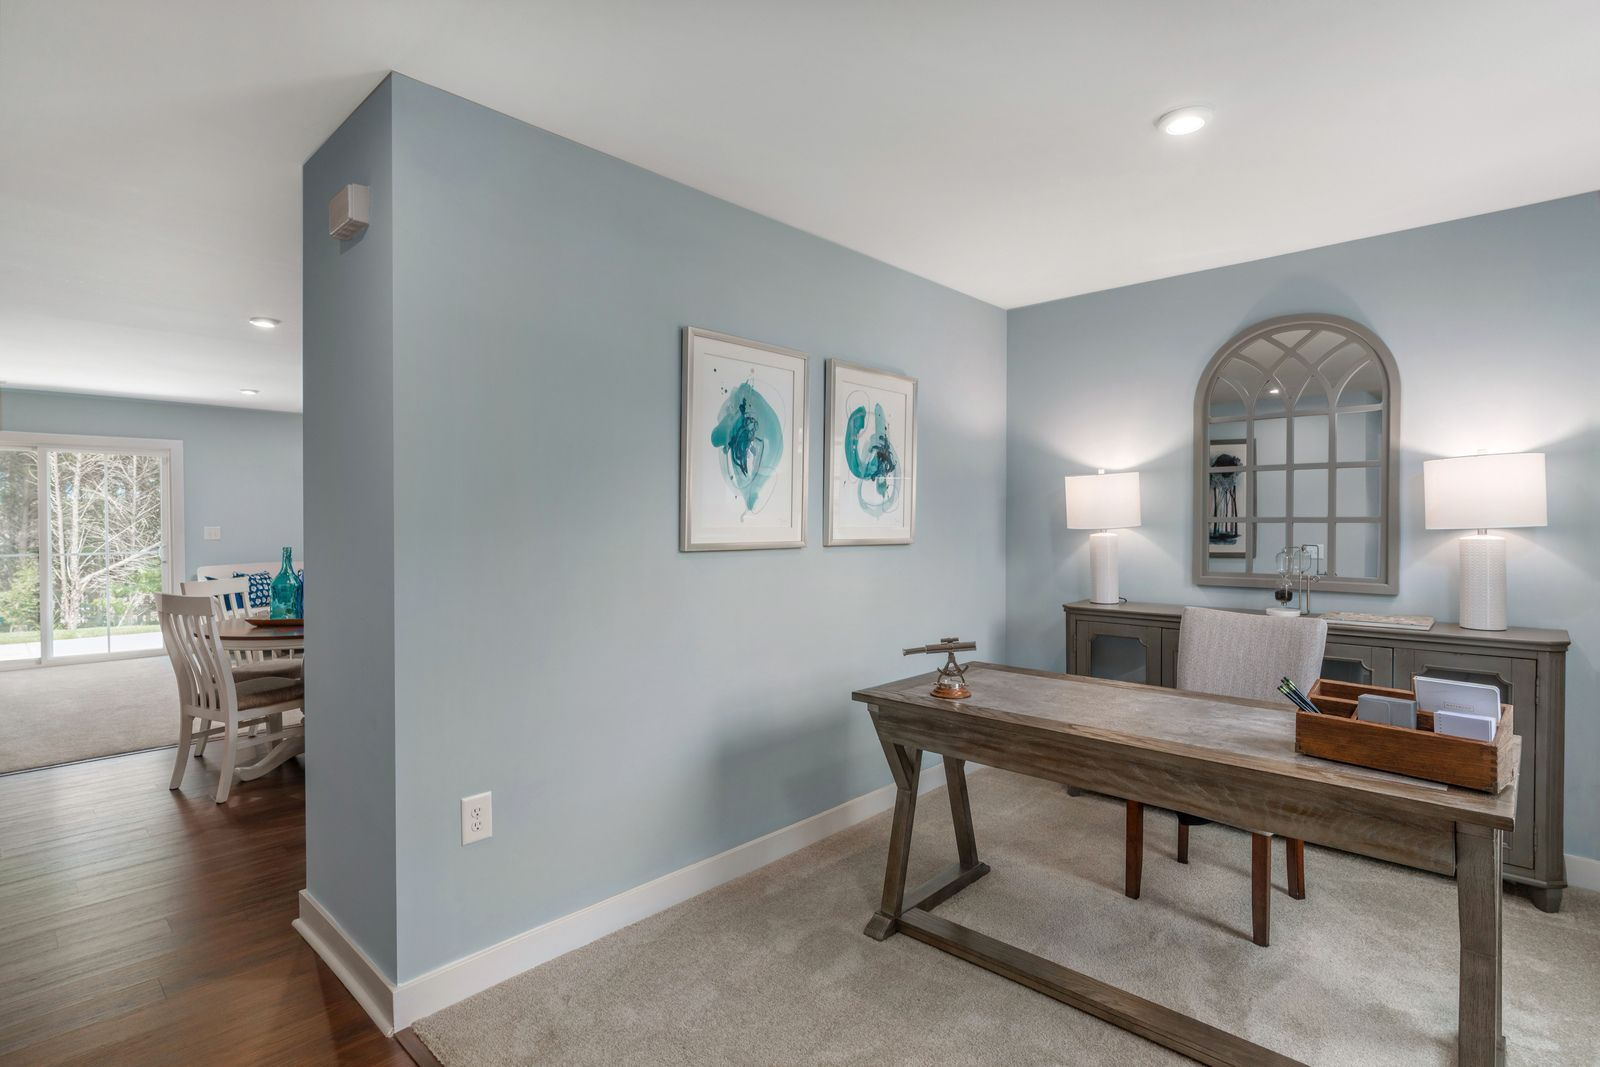 Living Area featured in the Aruba Bay By Ryan Homes in Dover, DE